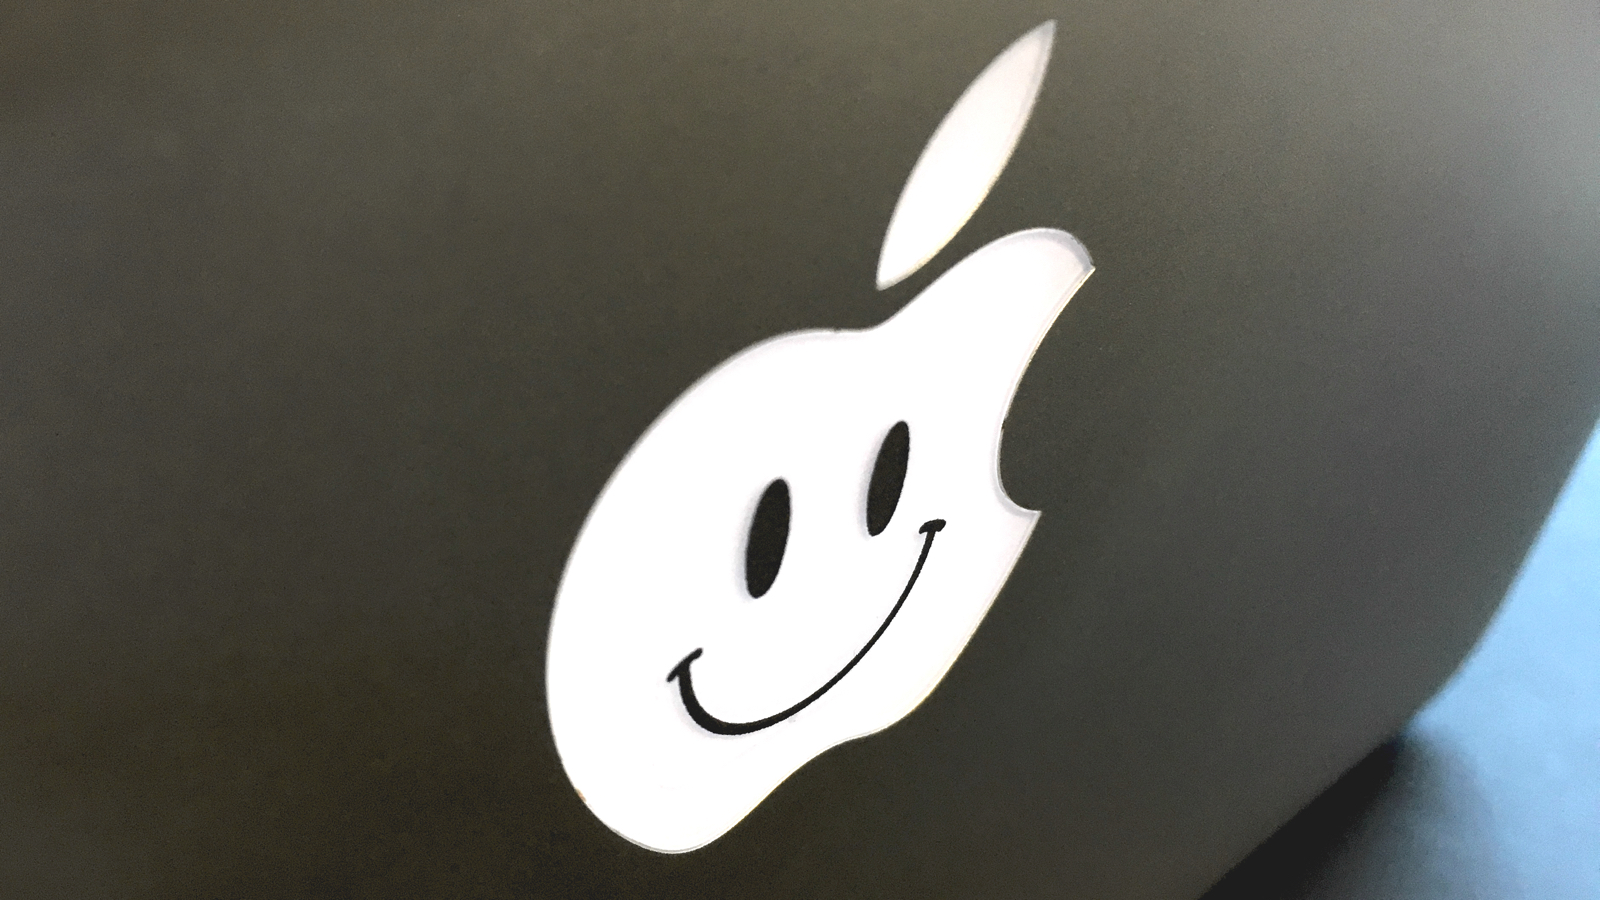 apple_glad_logo.jpg